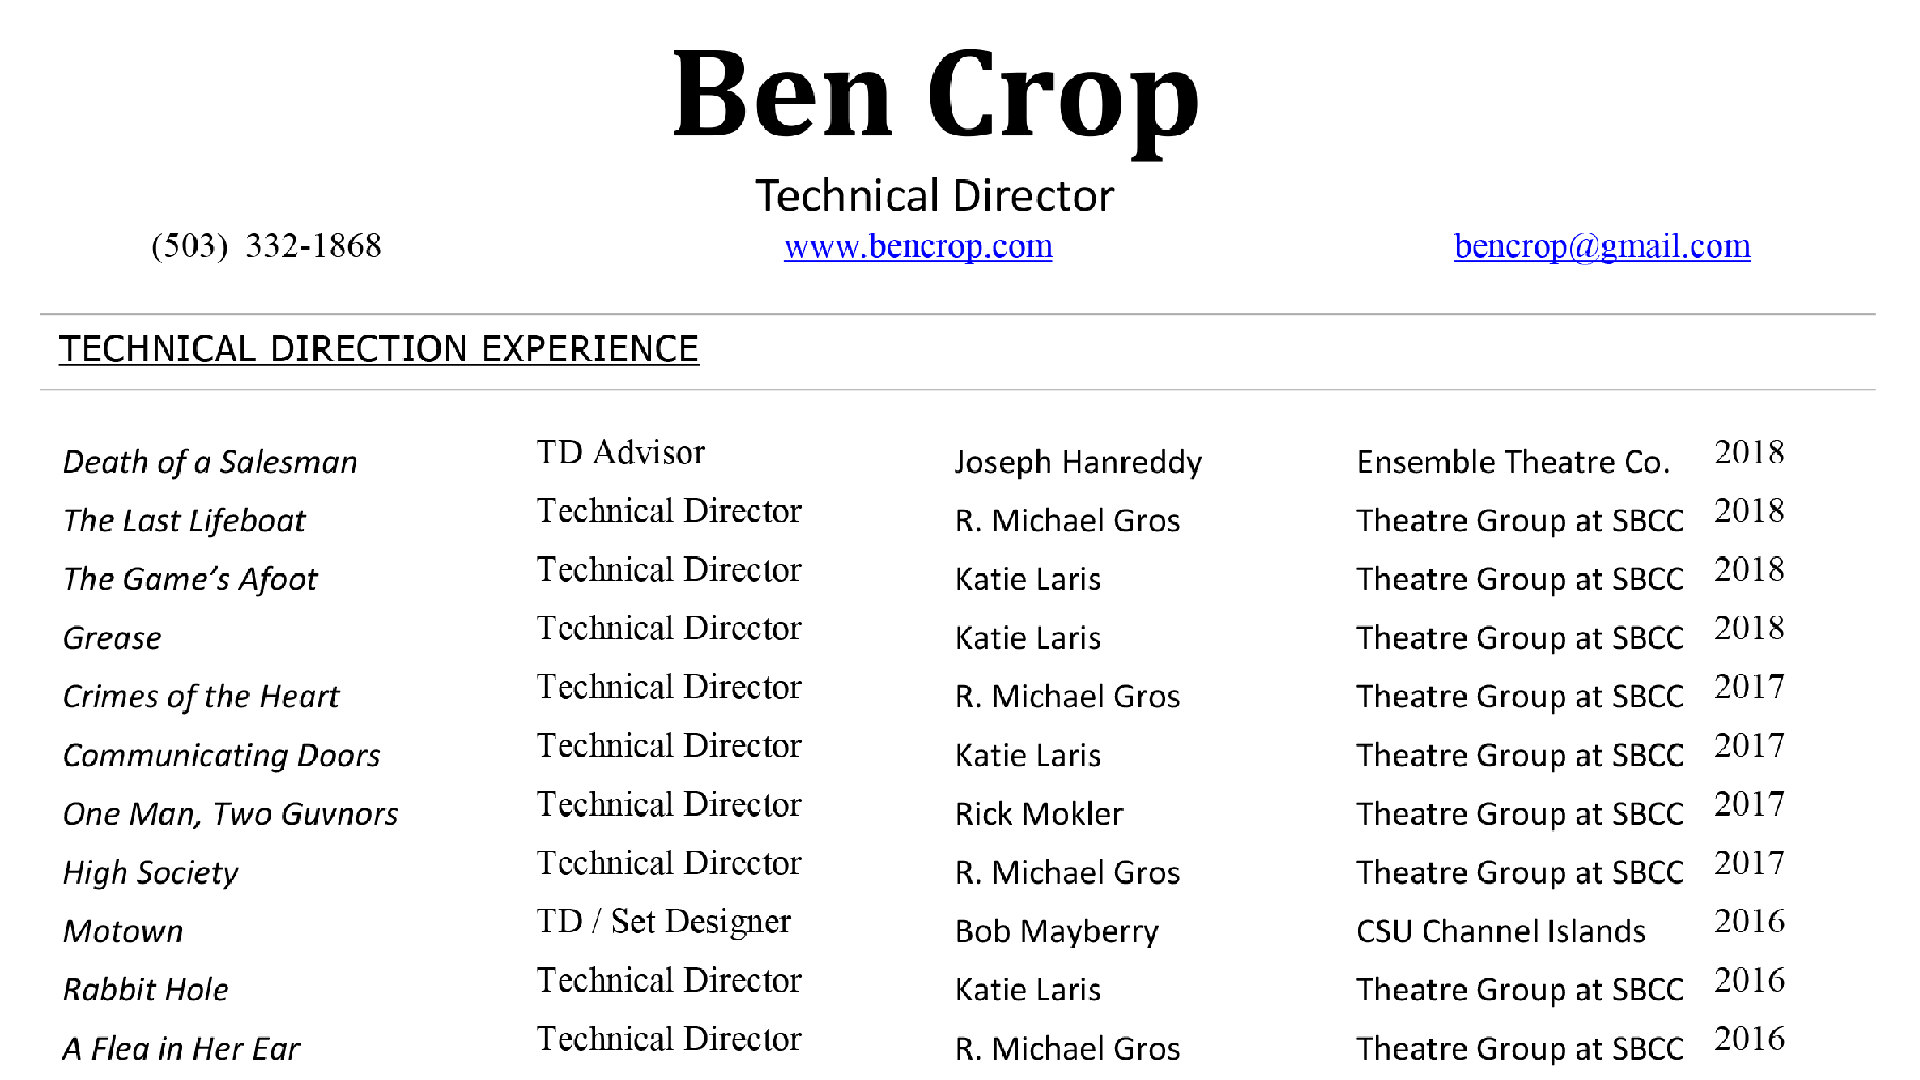 Technical Direction Resume